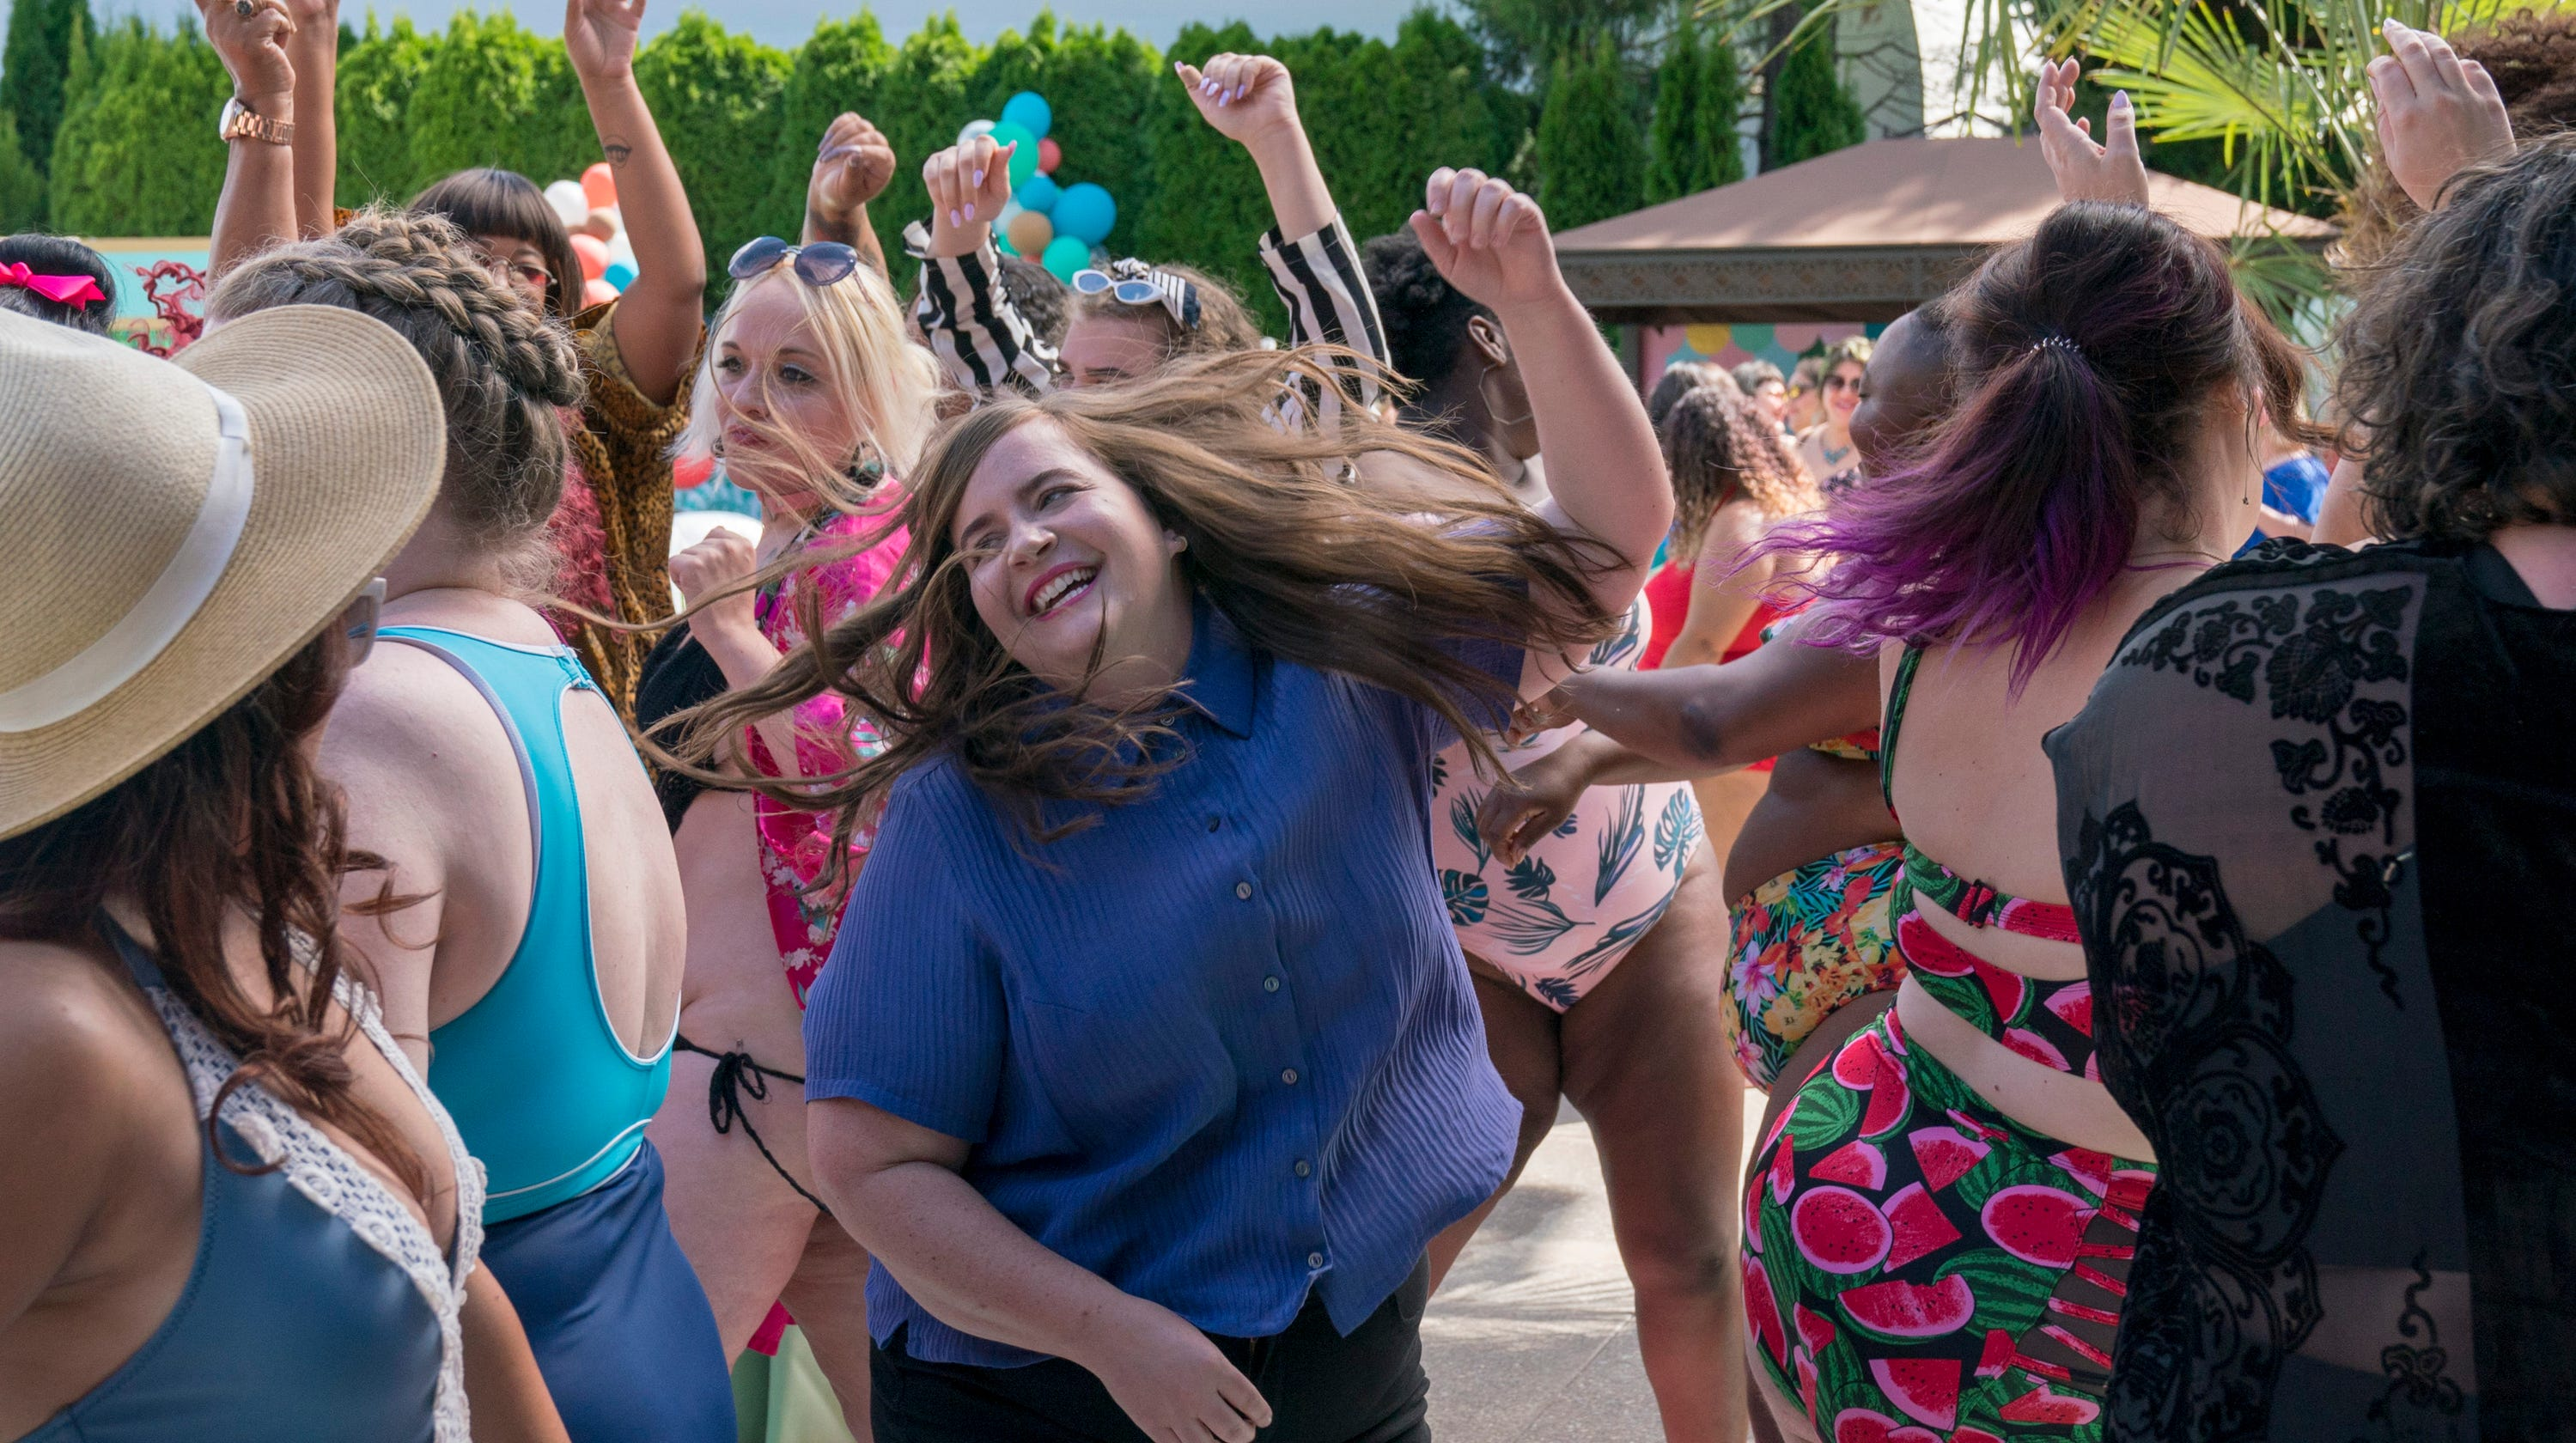 Aidy Bryant in Shrill. Annie at the pool party in the same blue blouse, this time she is dancing full-out among the crowd of party-goers in swimsuits and sun hats. She has a huge smile and her hair is tossing around, her arms waving.